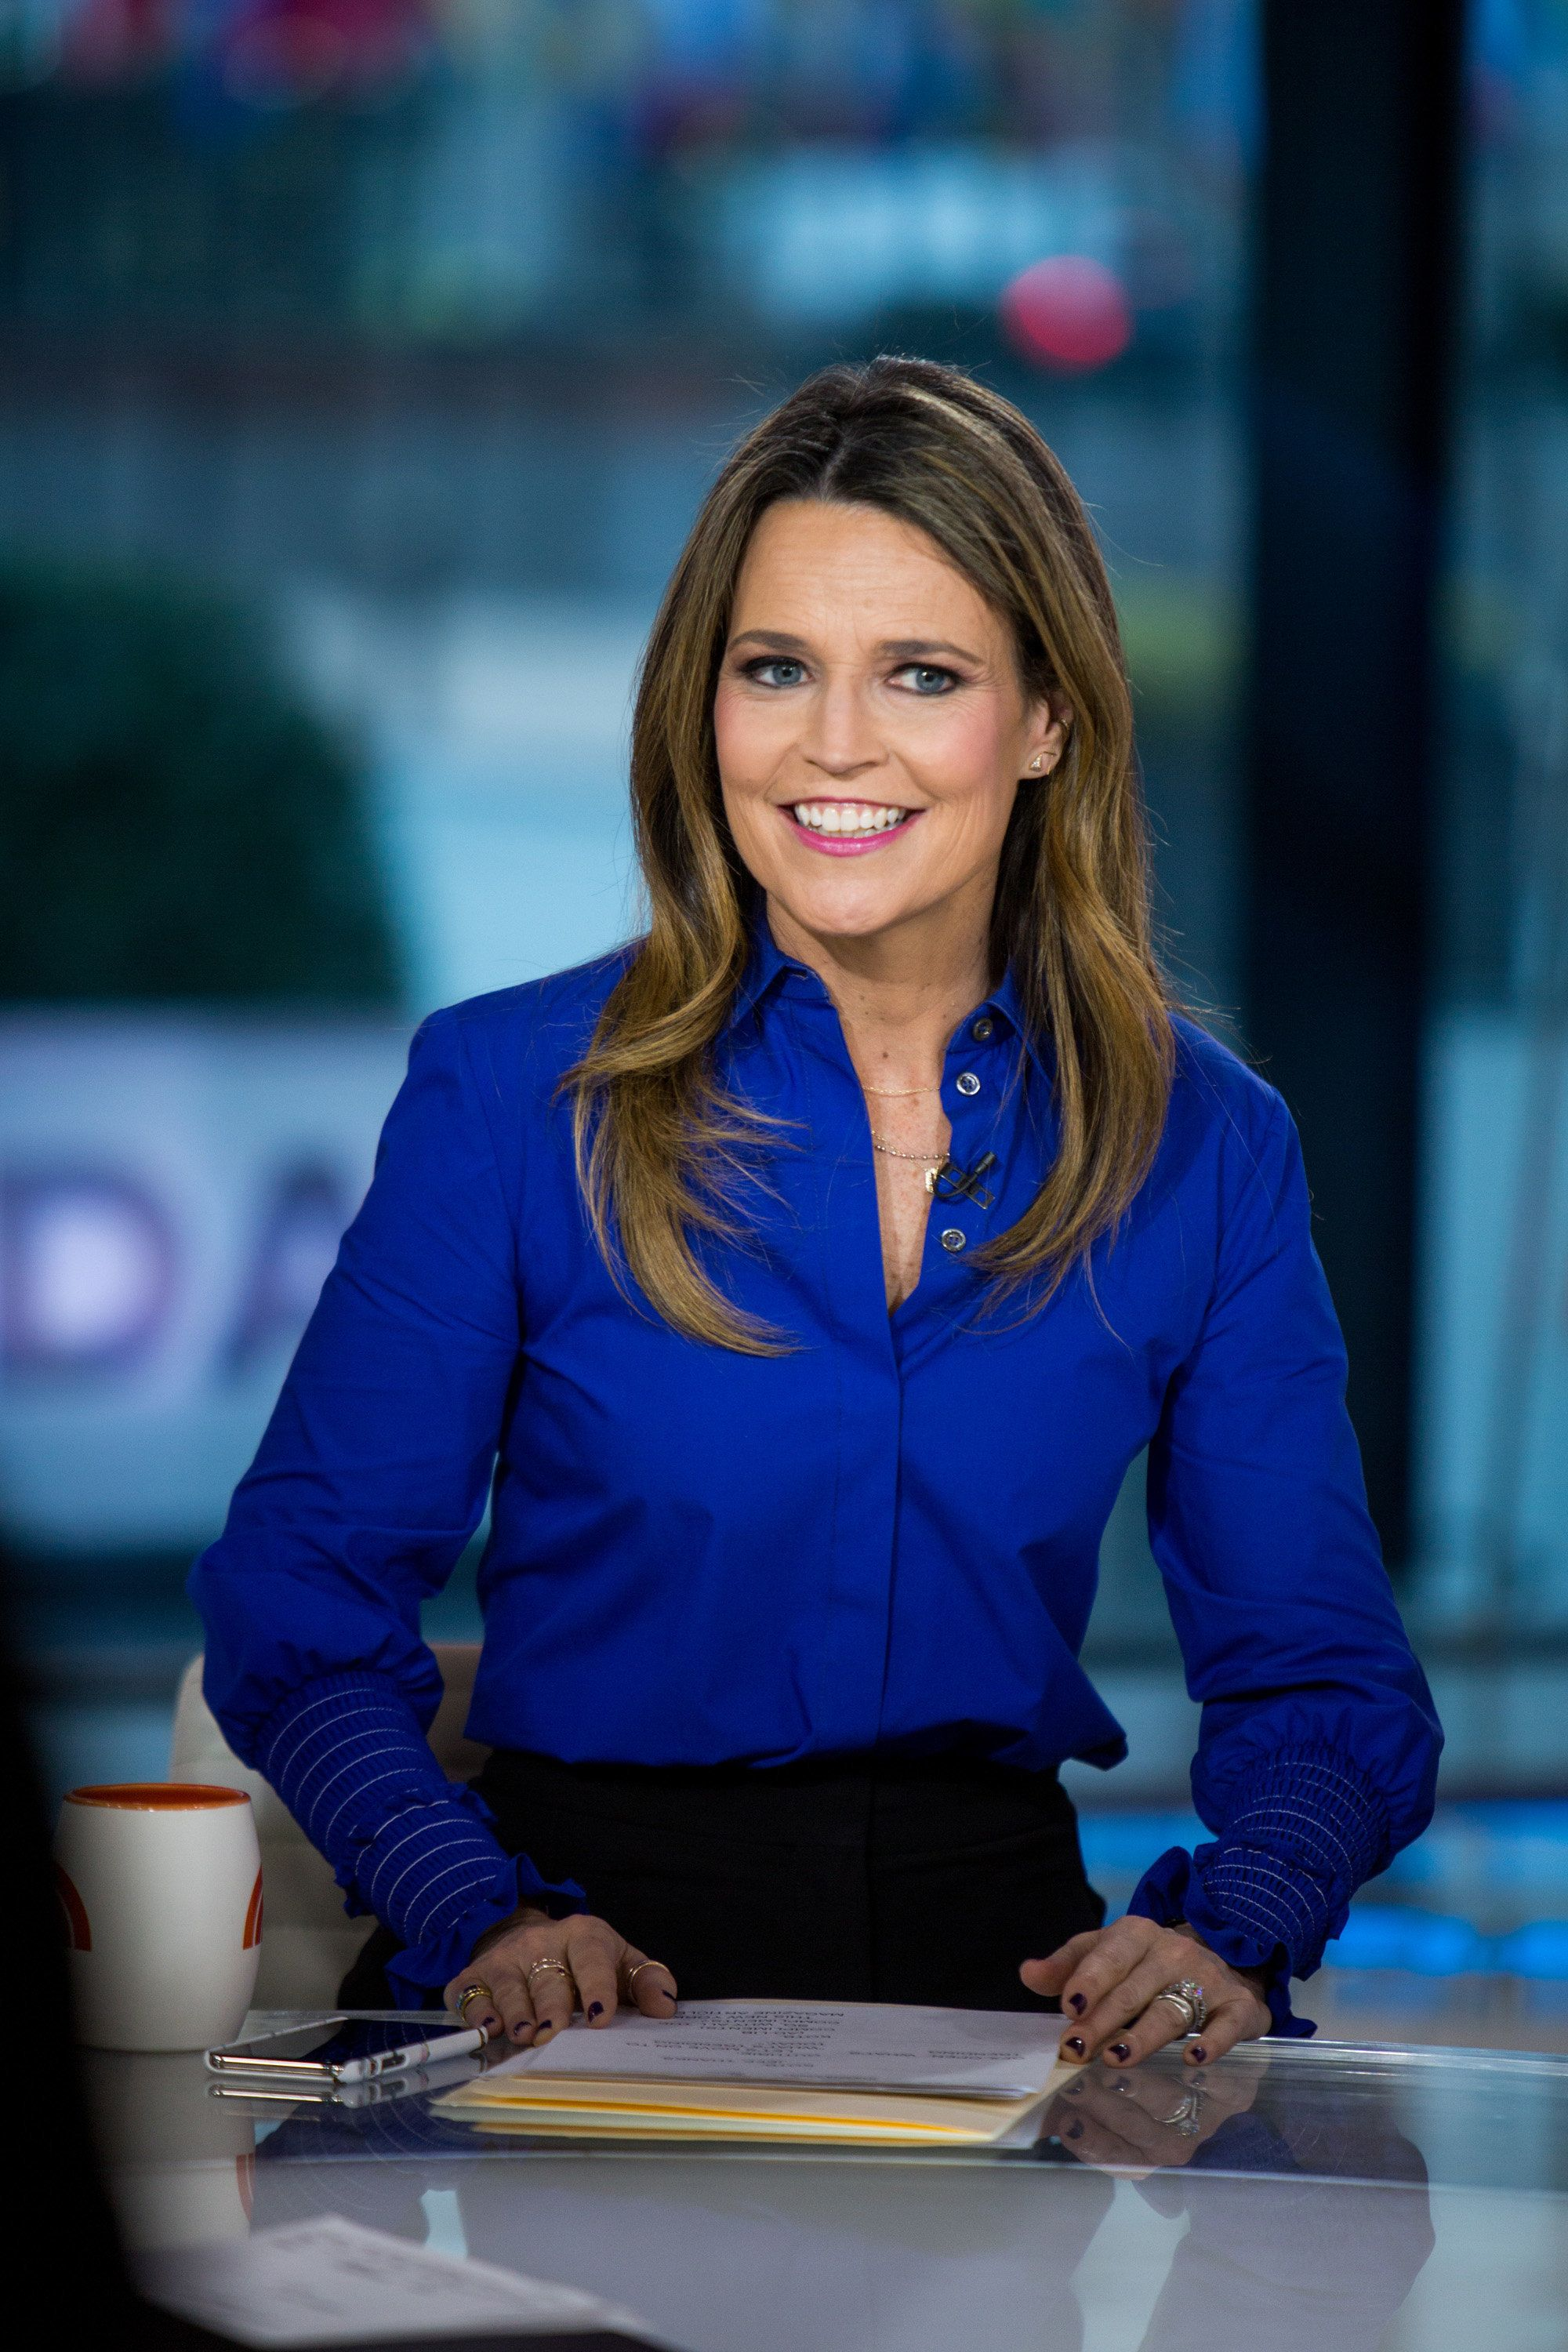 Savannah Guthrie denied pregnancy rumors and offered some important advice along the way.